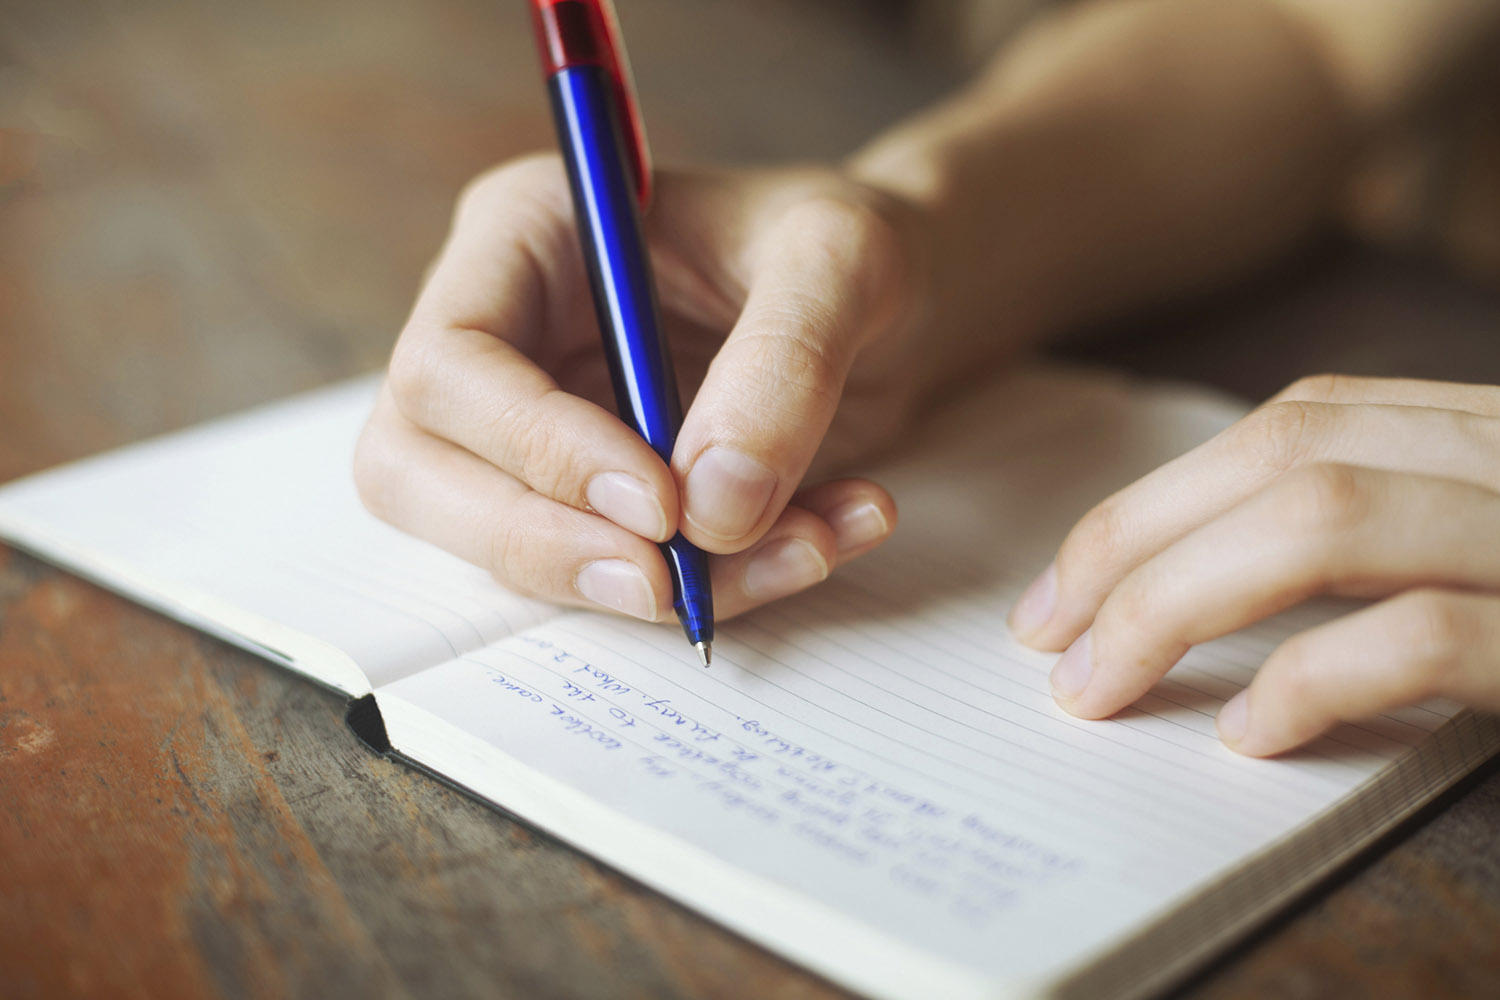 writning a thesis statement My biggest writing struggle is waiting tv has stolen my attention span i no long appreciate activities that require patience if i'm honest, though,.